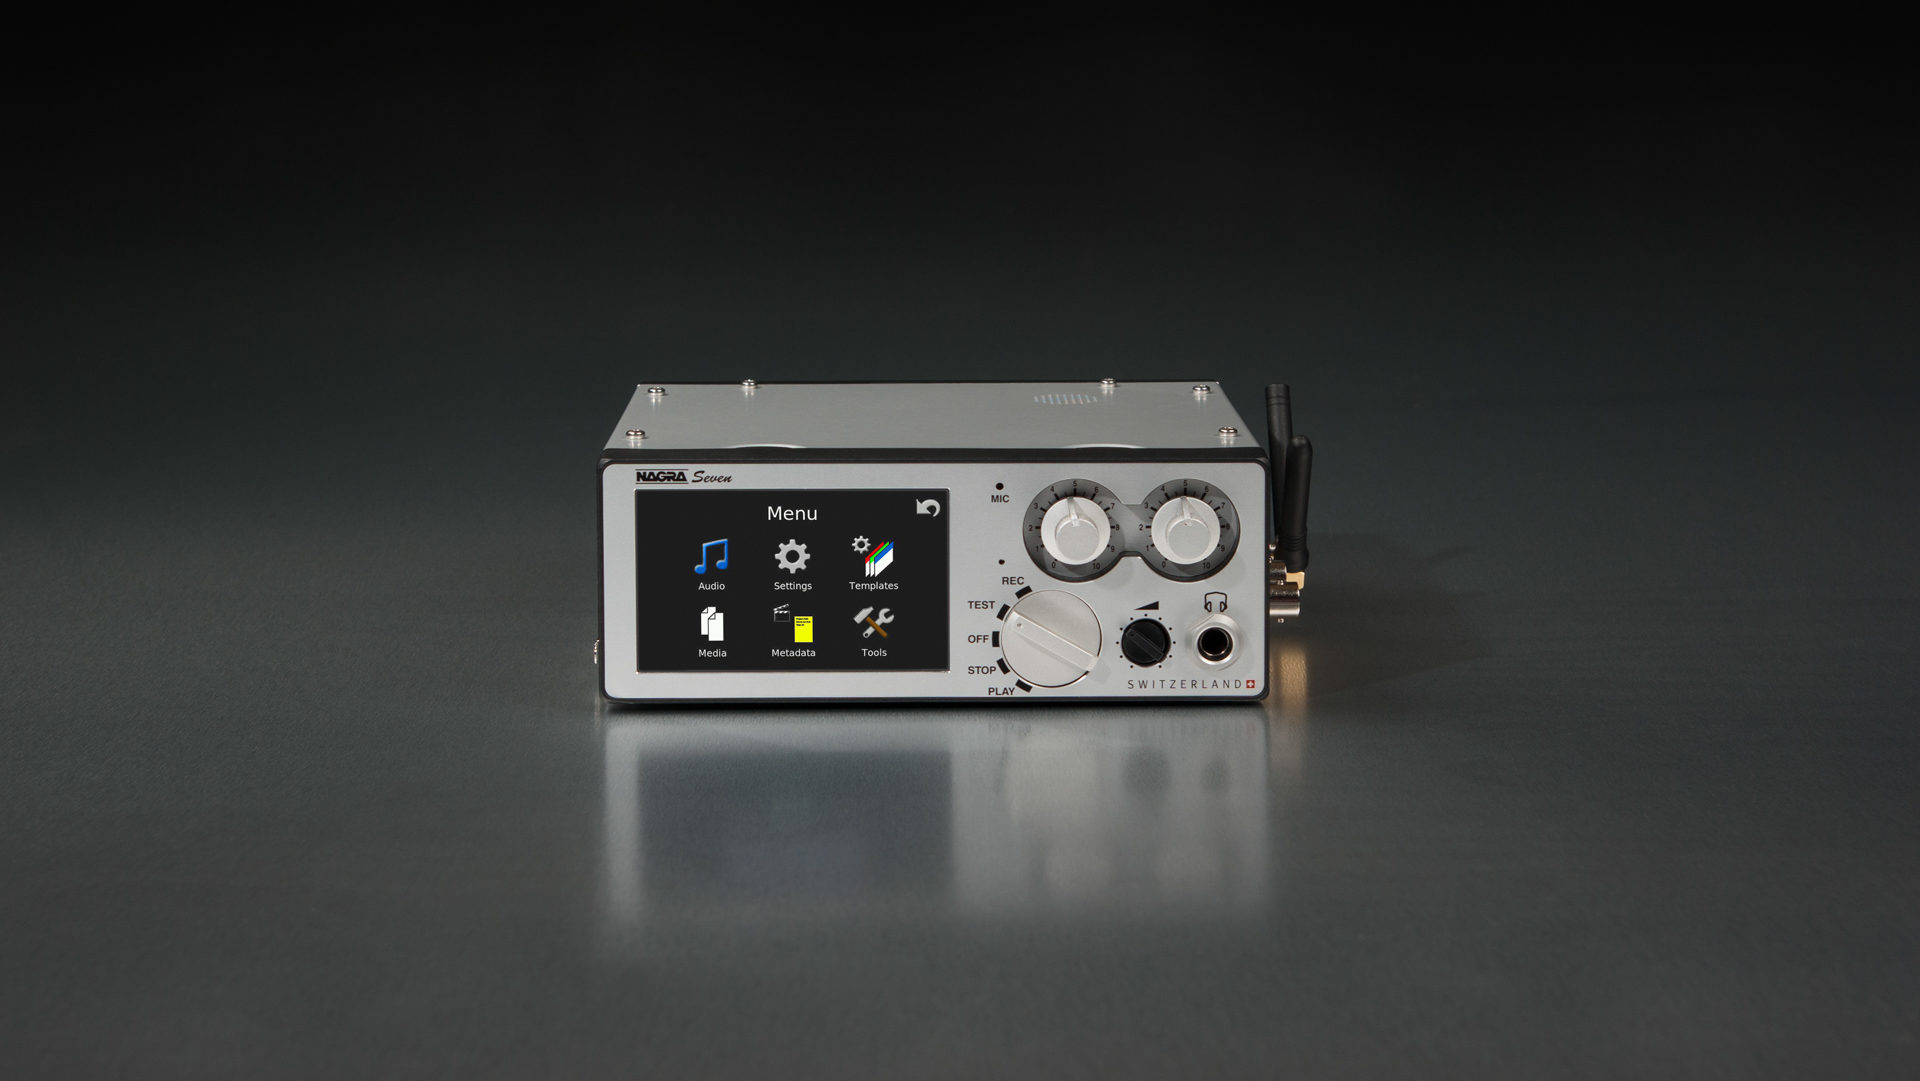 Nagra seven front time code wifi 3G 4G gsm